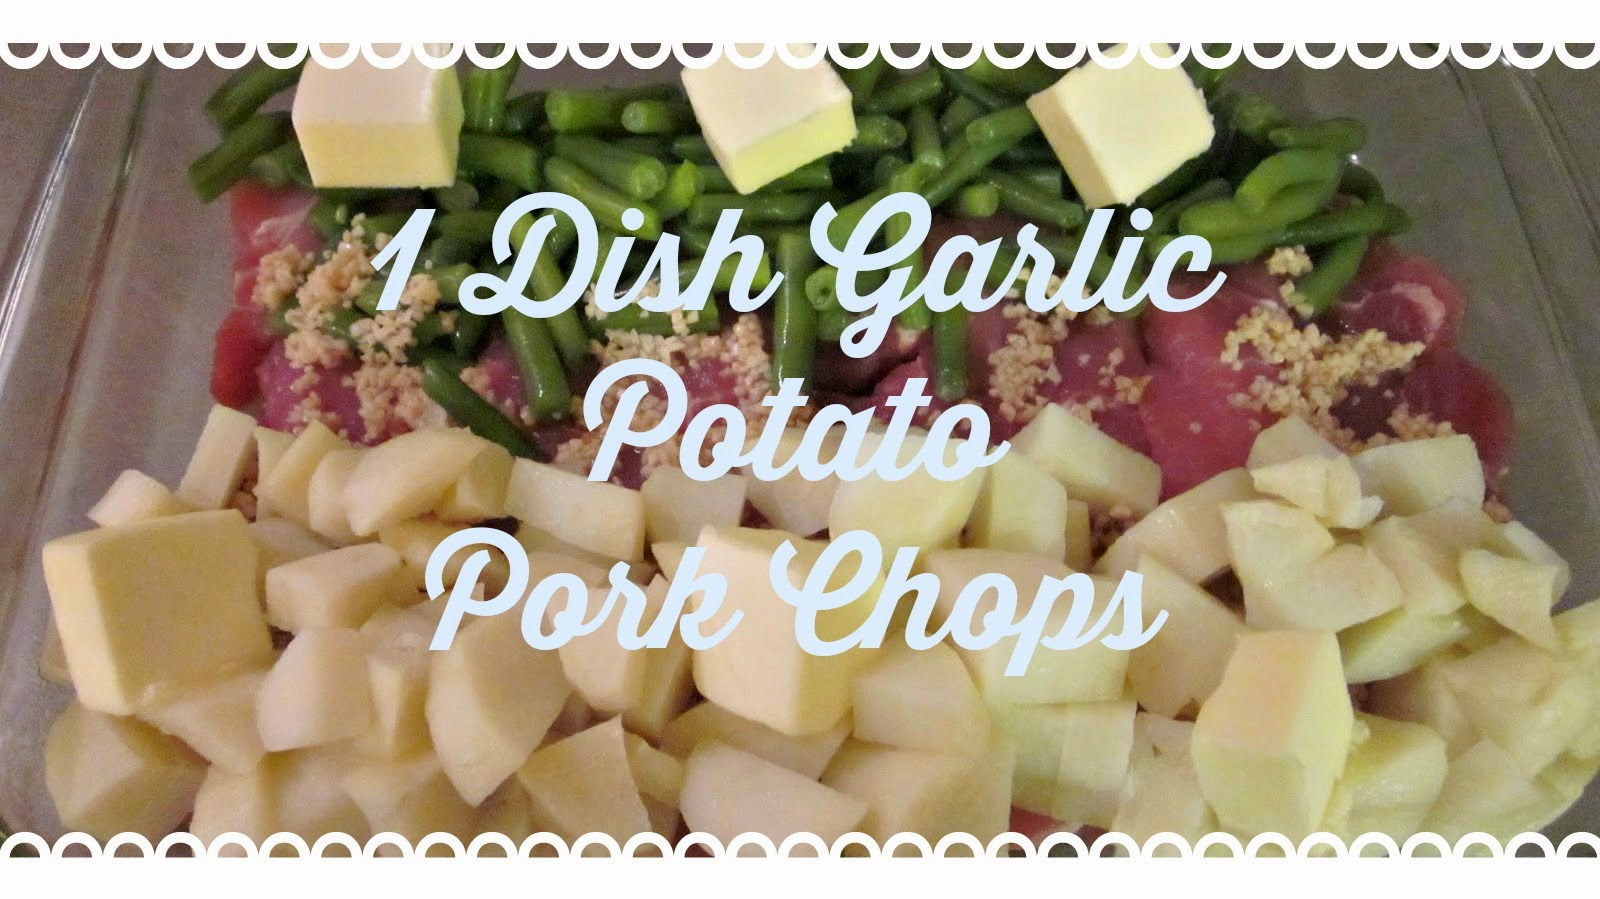 Recipe, 1 dish recipe, garlic potato pork chops, easy, baked pork chops, baked recipes for pork chops.